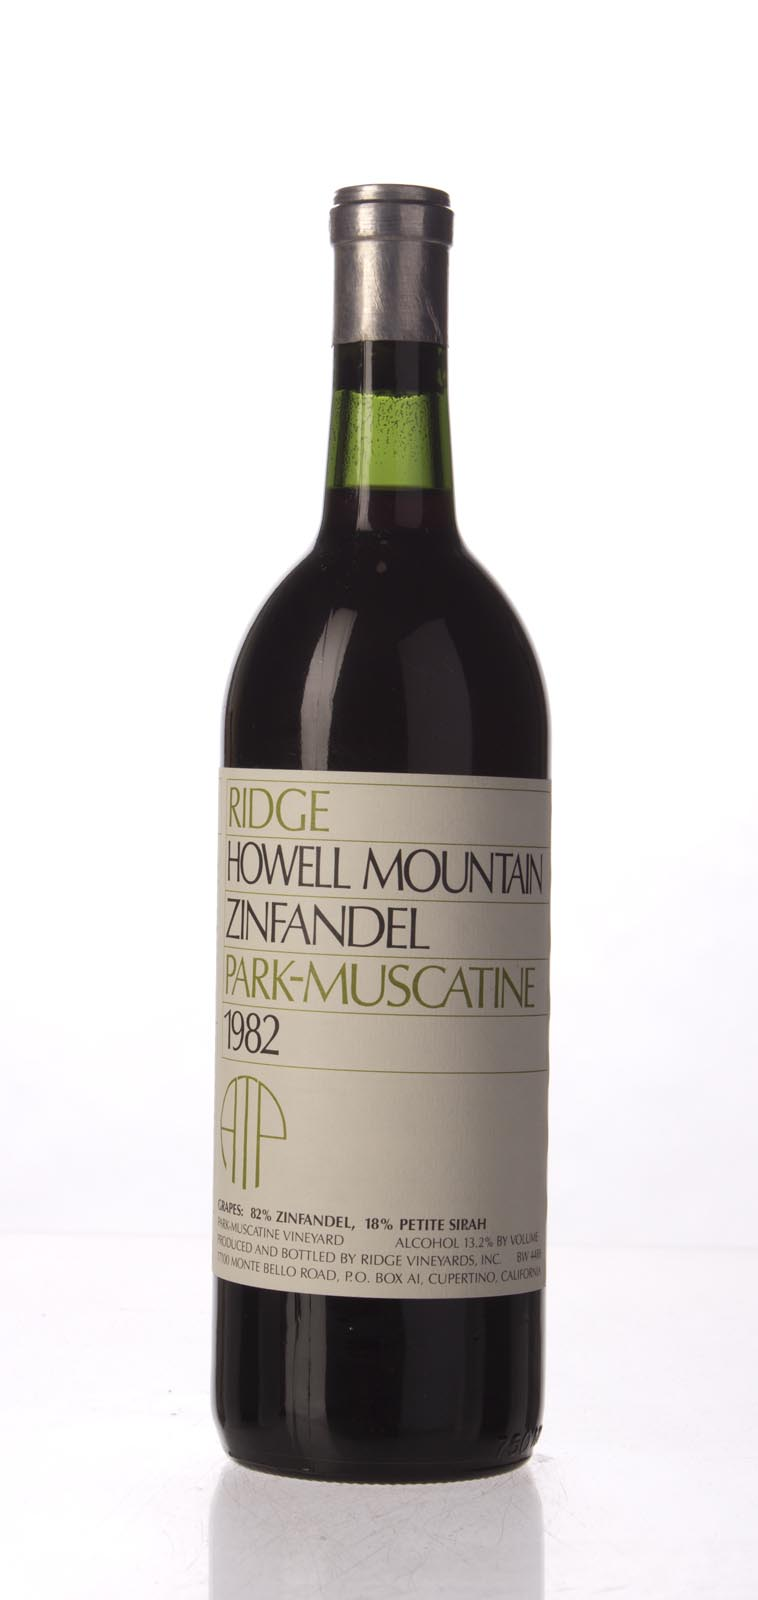 Ridge Zinfandel Park Muscatine 1982, 750mL () from The BPW - Merchants of rare and fine wines.